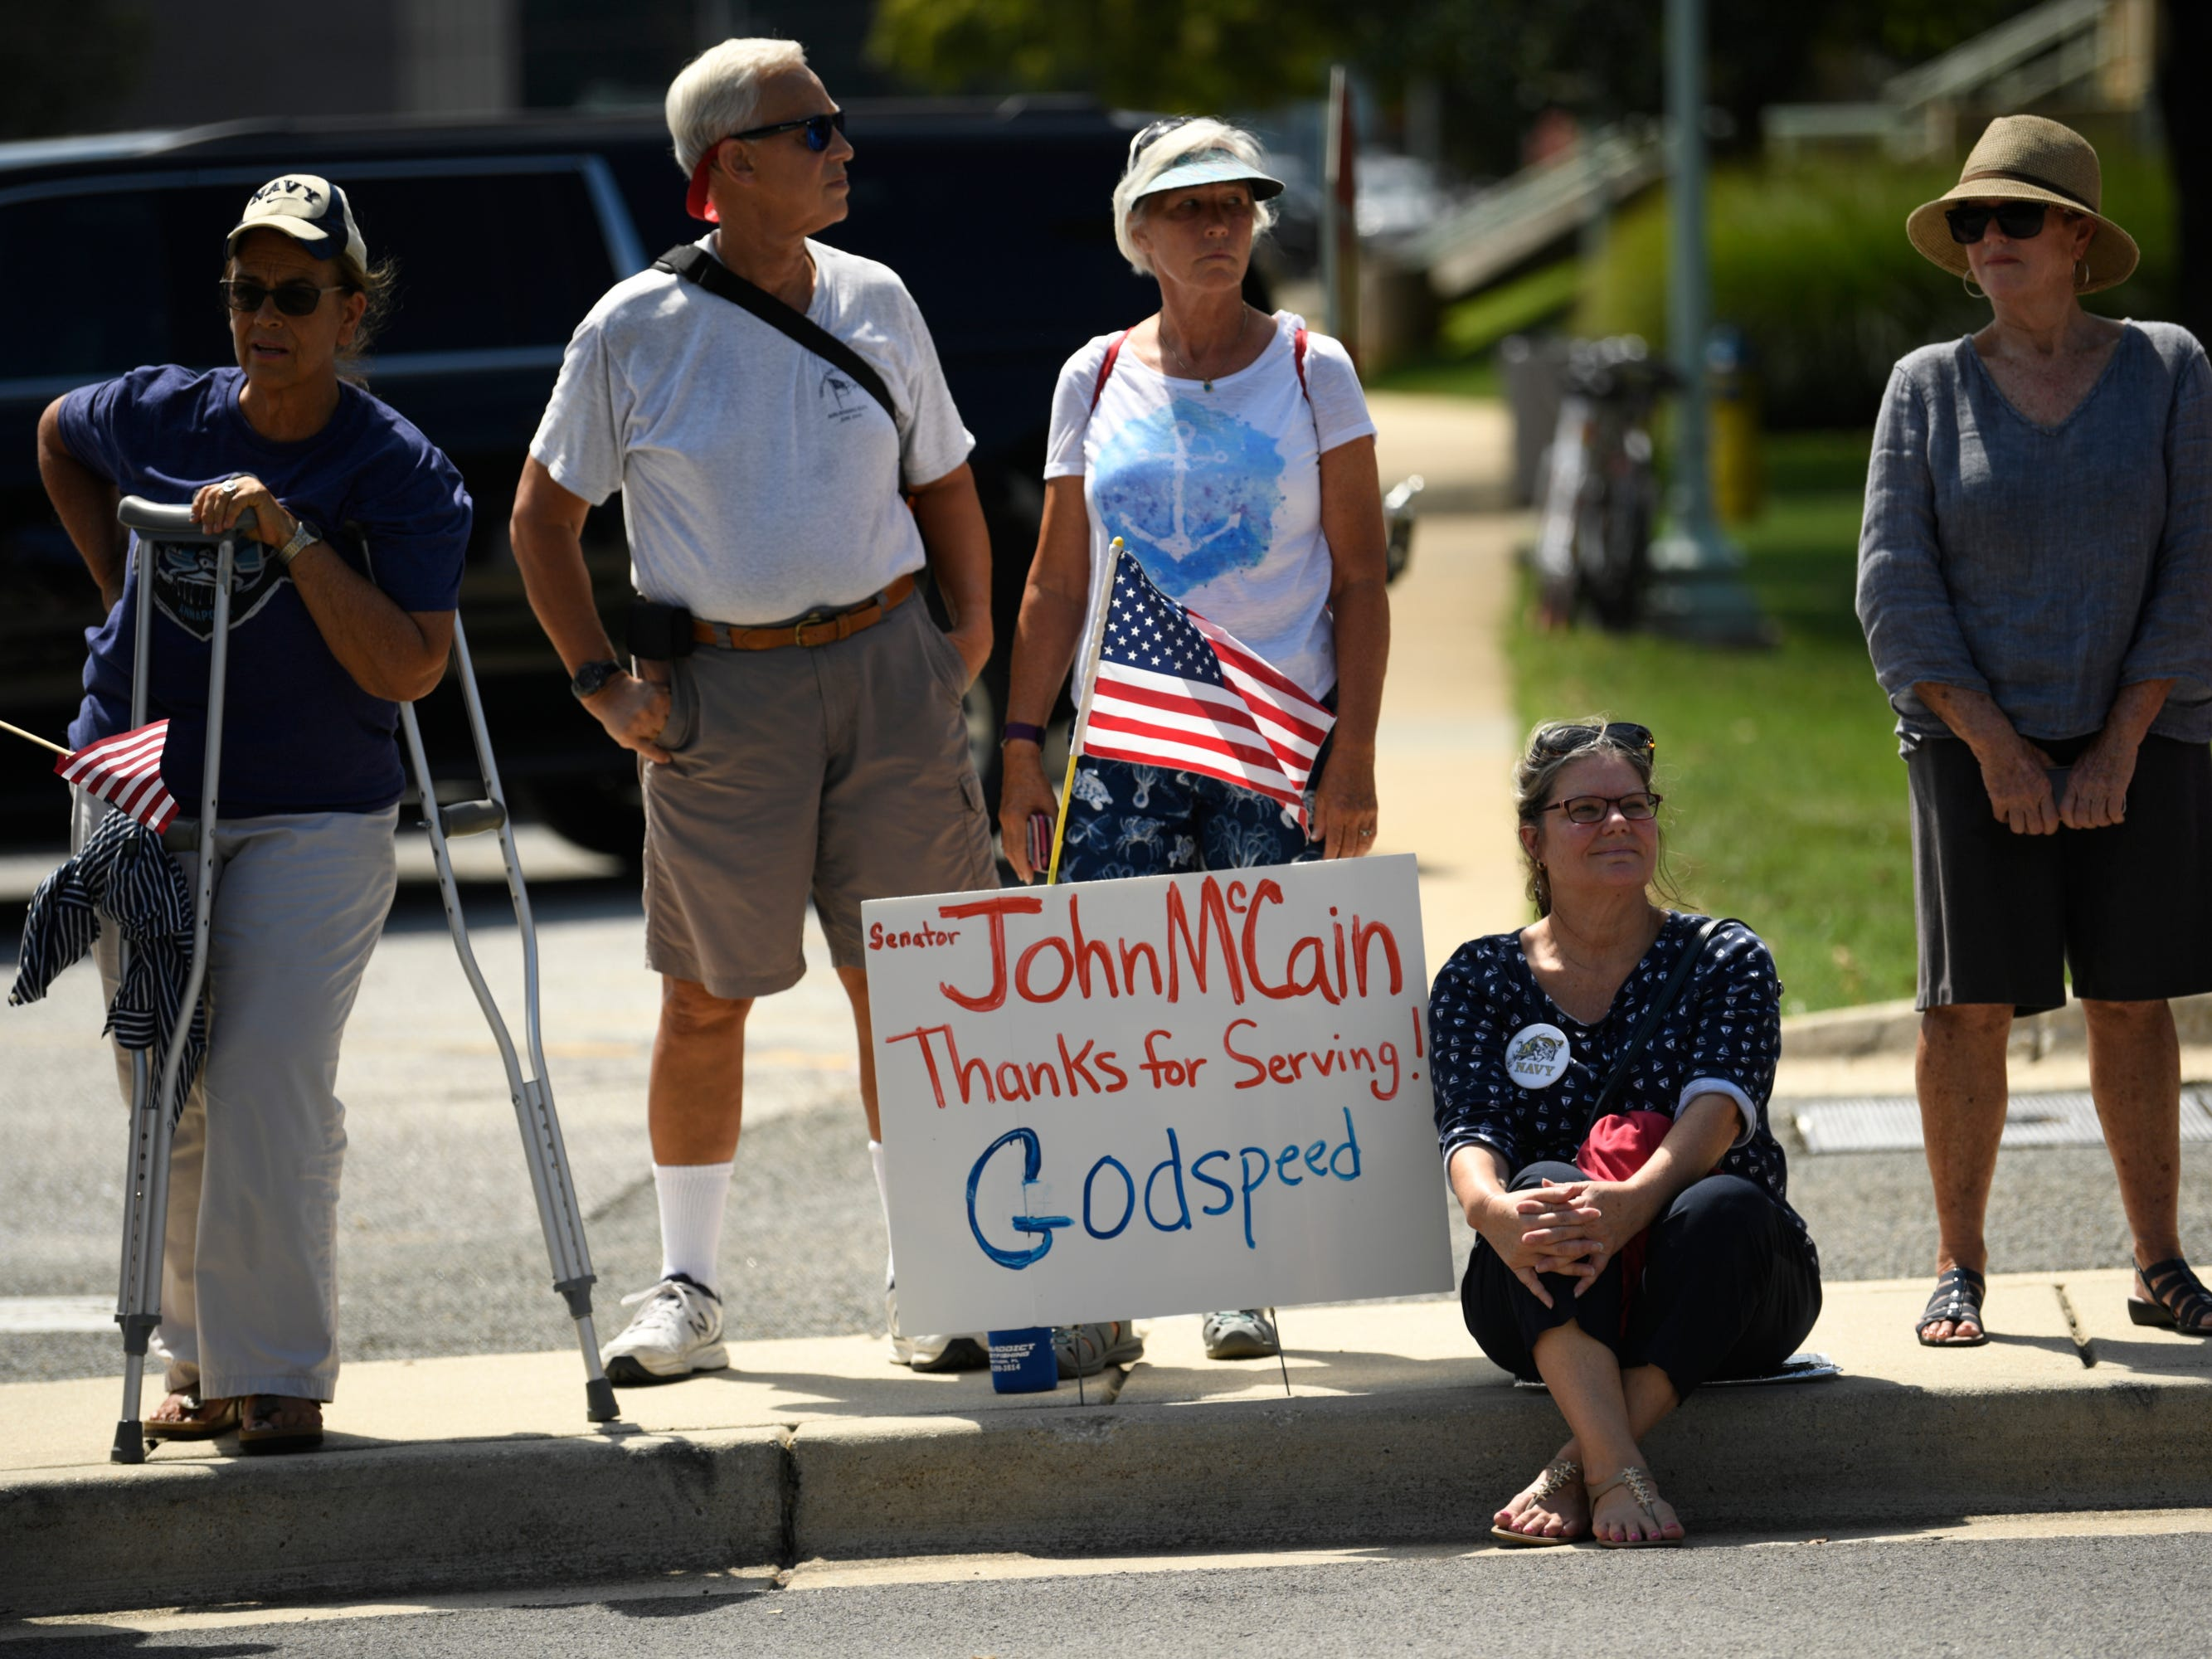 9/2/18 1:20:10 PM -- Annapolis, MD, U.S.A  -- People gather to watch the passing of John McCain's motorcade on his way to be laid to rest at the U.S. Naval Academy.  --    Photo by Jasper Colt, USA TODAY Staff ORG XMIT:  JC 137444 McCain Annapolis 9/2/2018 (Via OlyDrop)